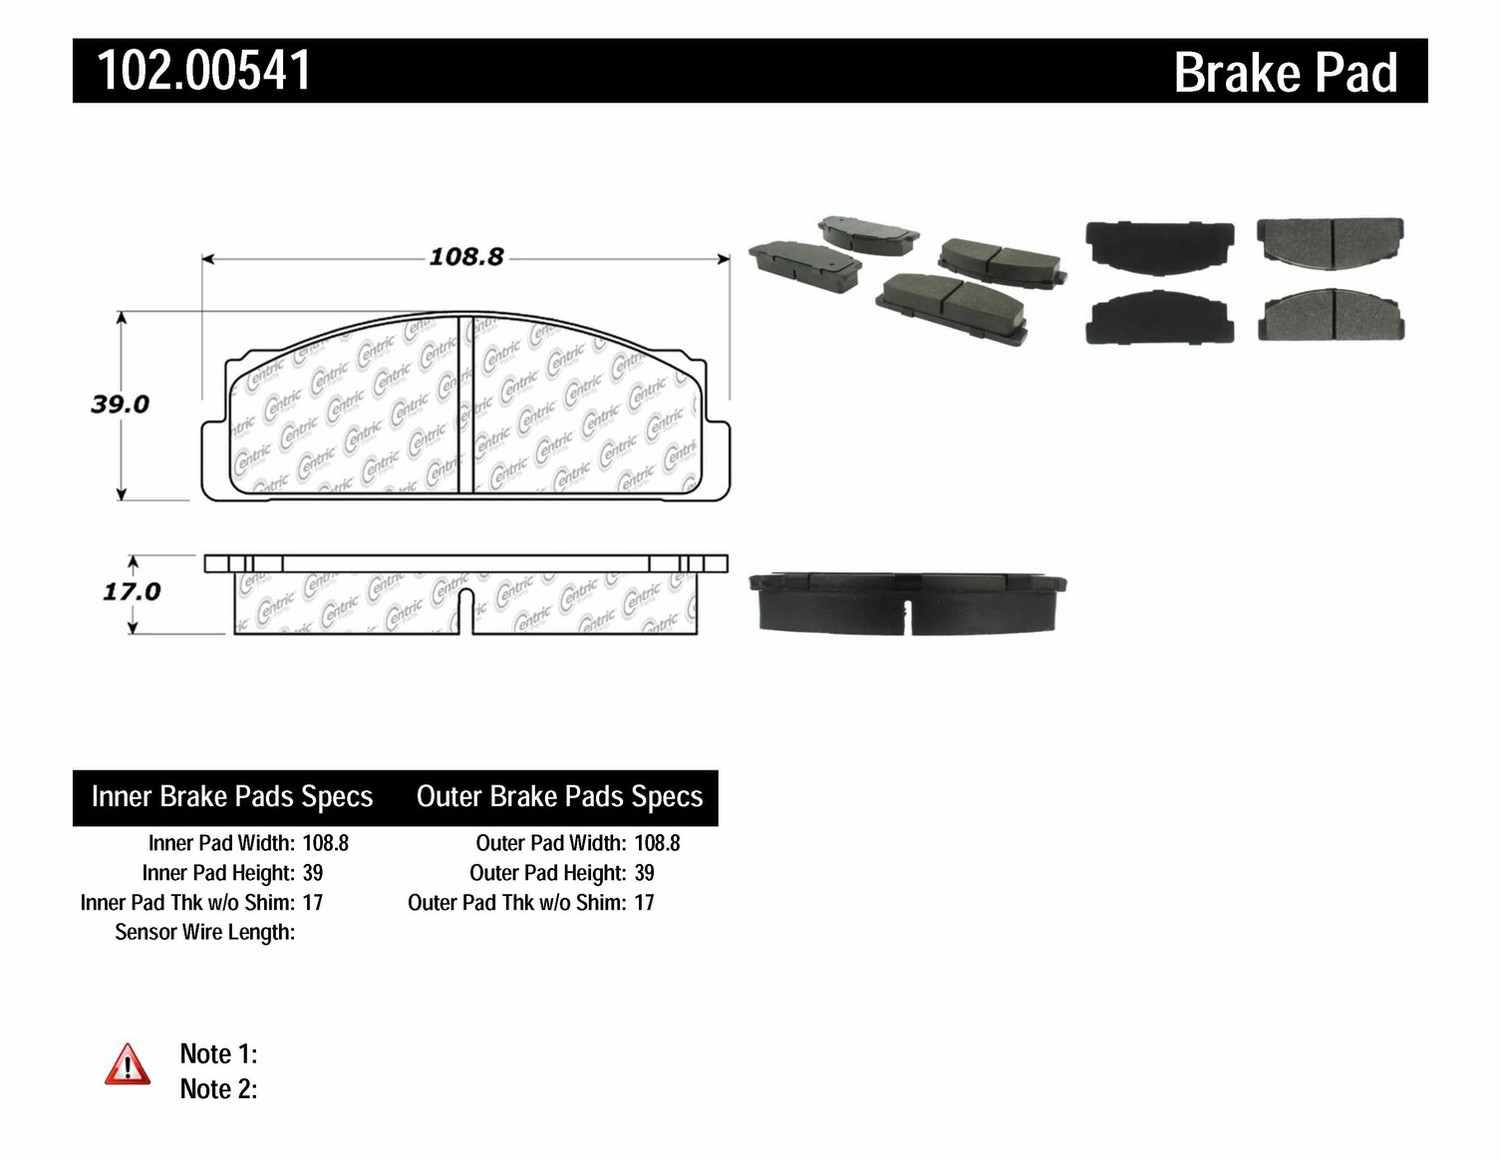 C-TEK BY CENTRIC - C-TEK Metallic Brake Pads-Preferred (Front) - CTK 102.00541